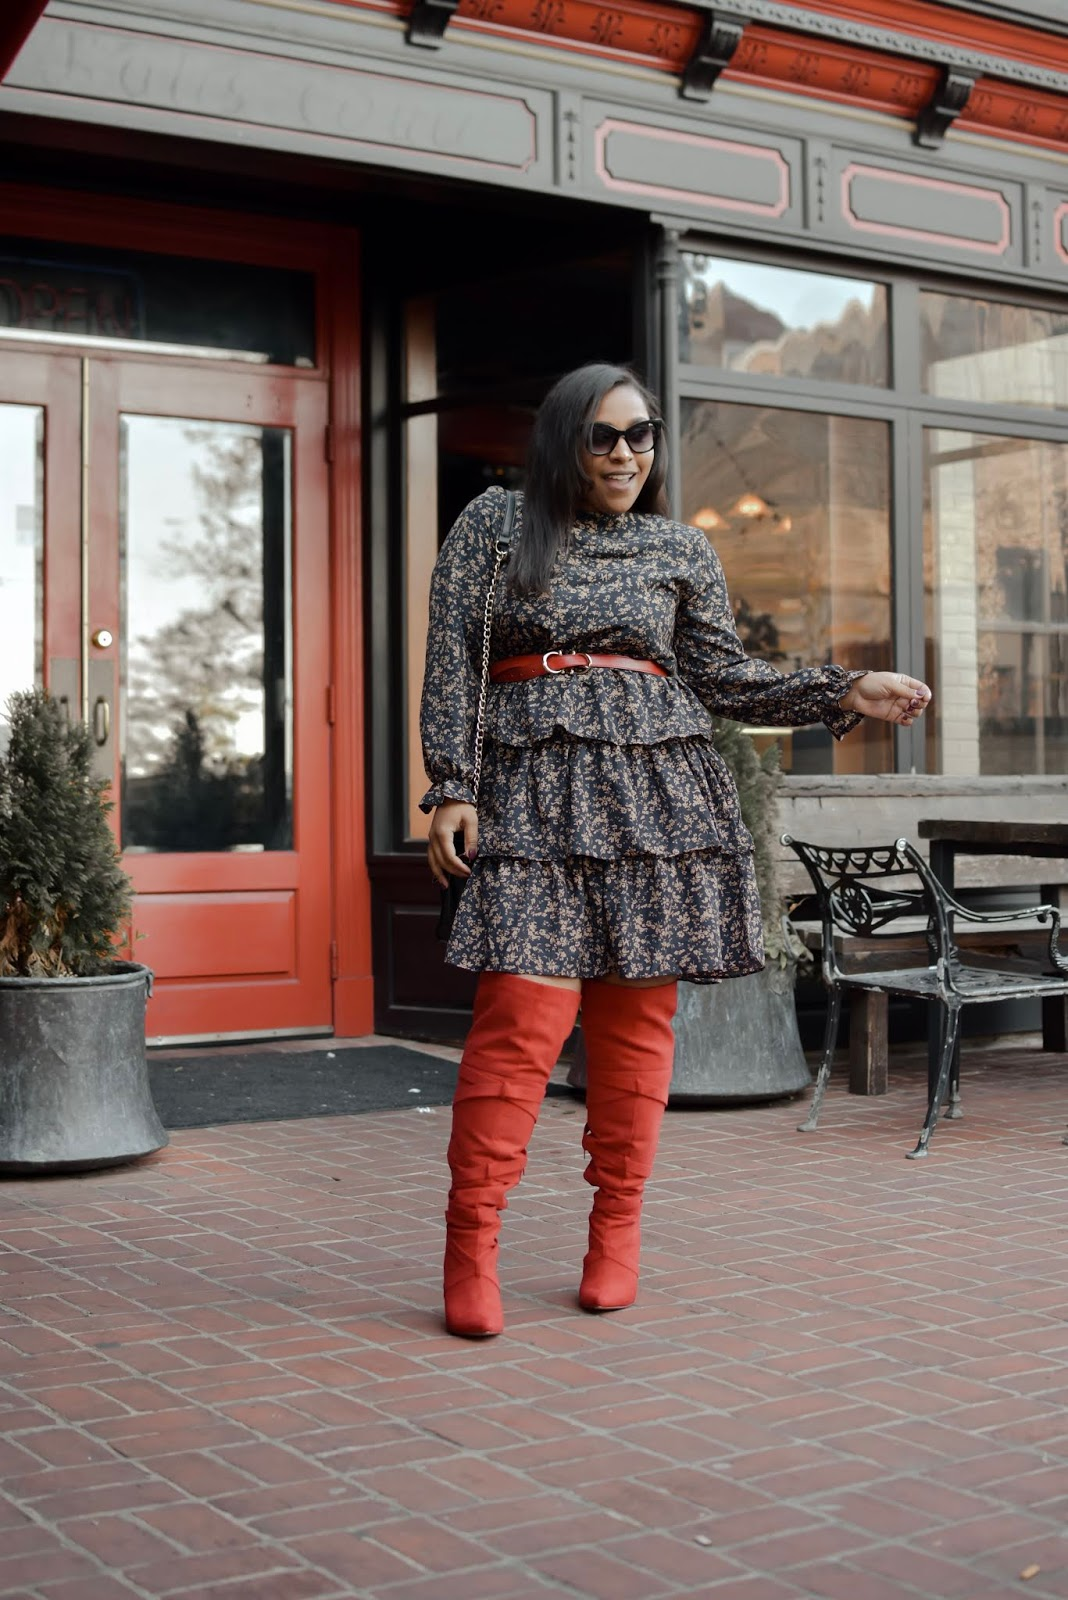 shein dress, shein reviews, fall outfits, over the knee boots, over the knee boots outfits